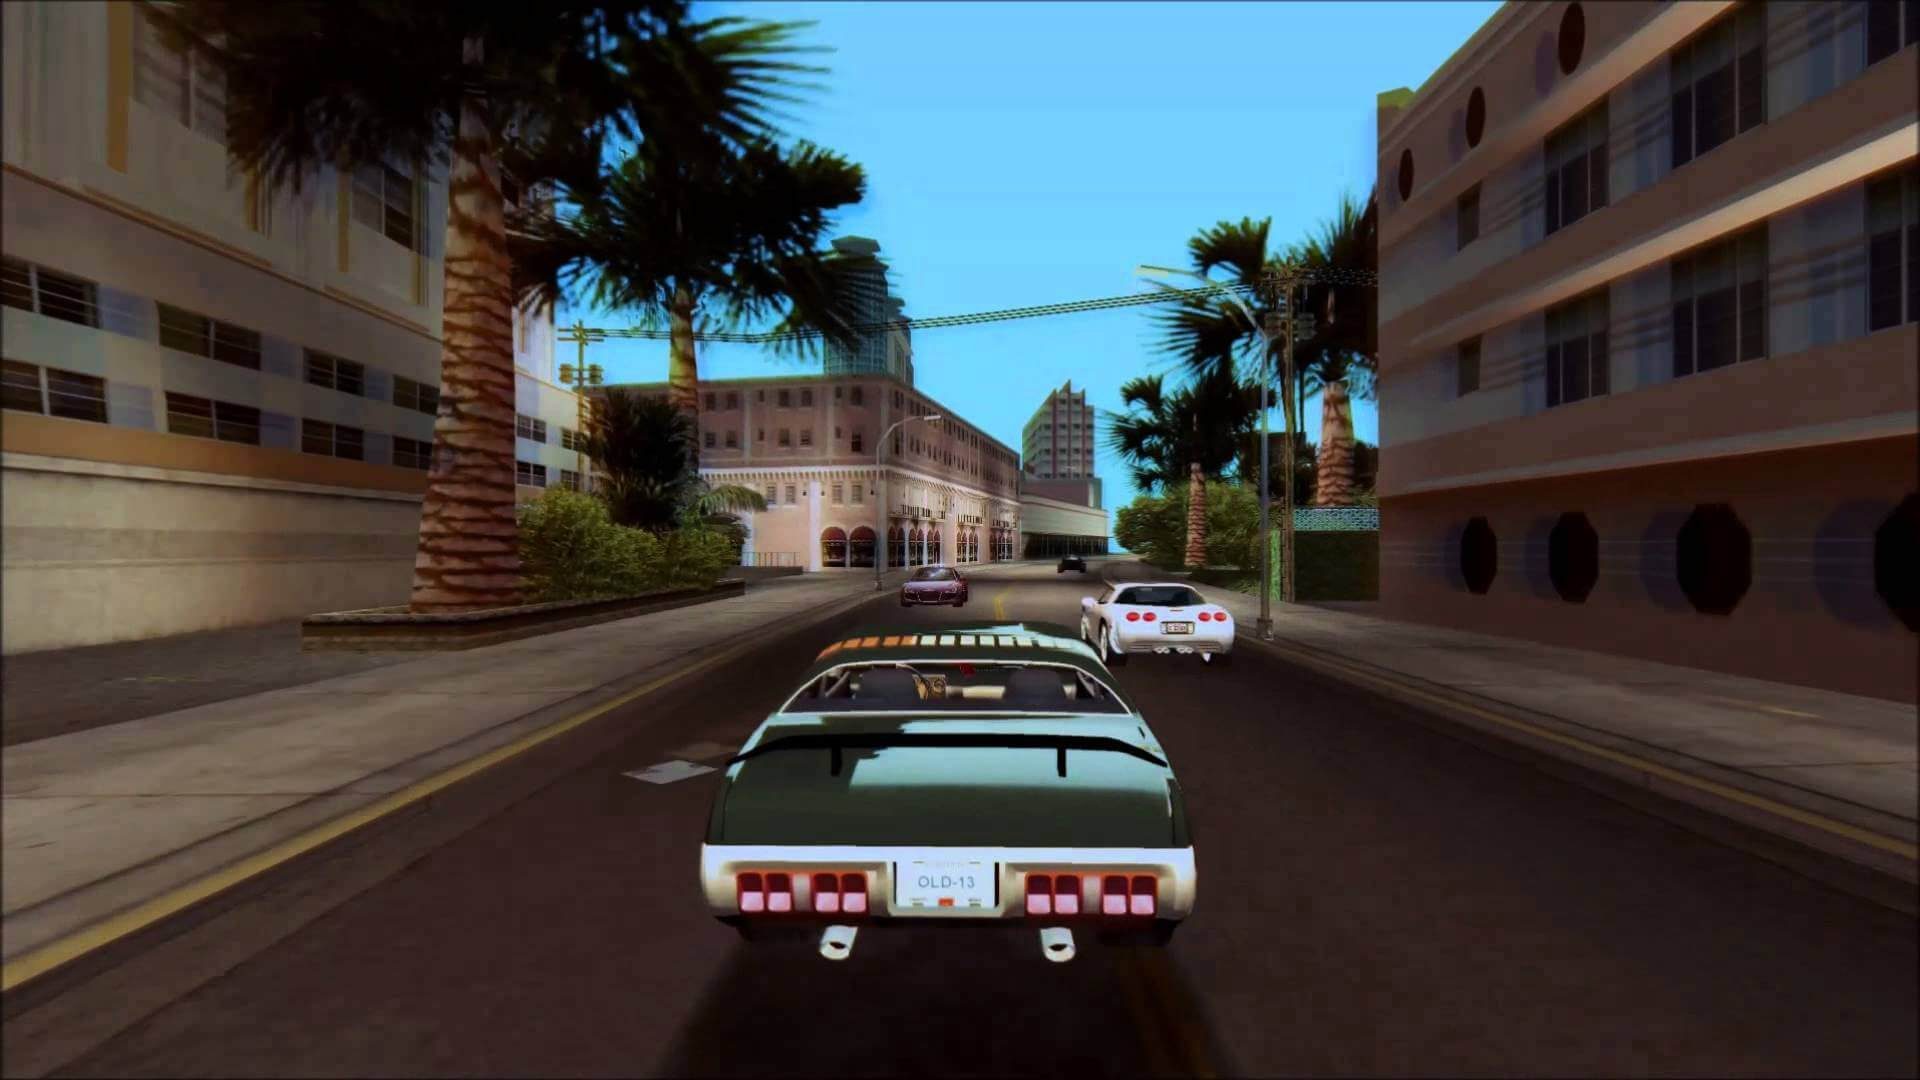 gta vice city 5 free download for pc full version